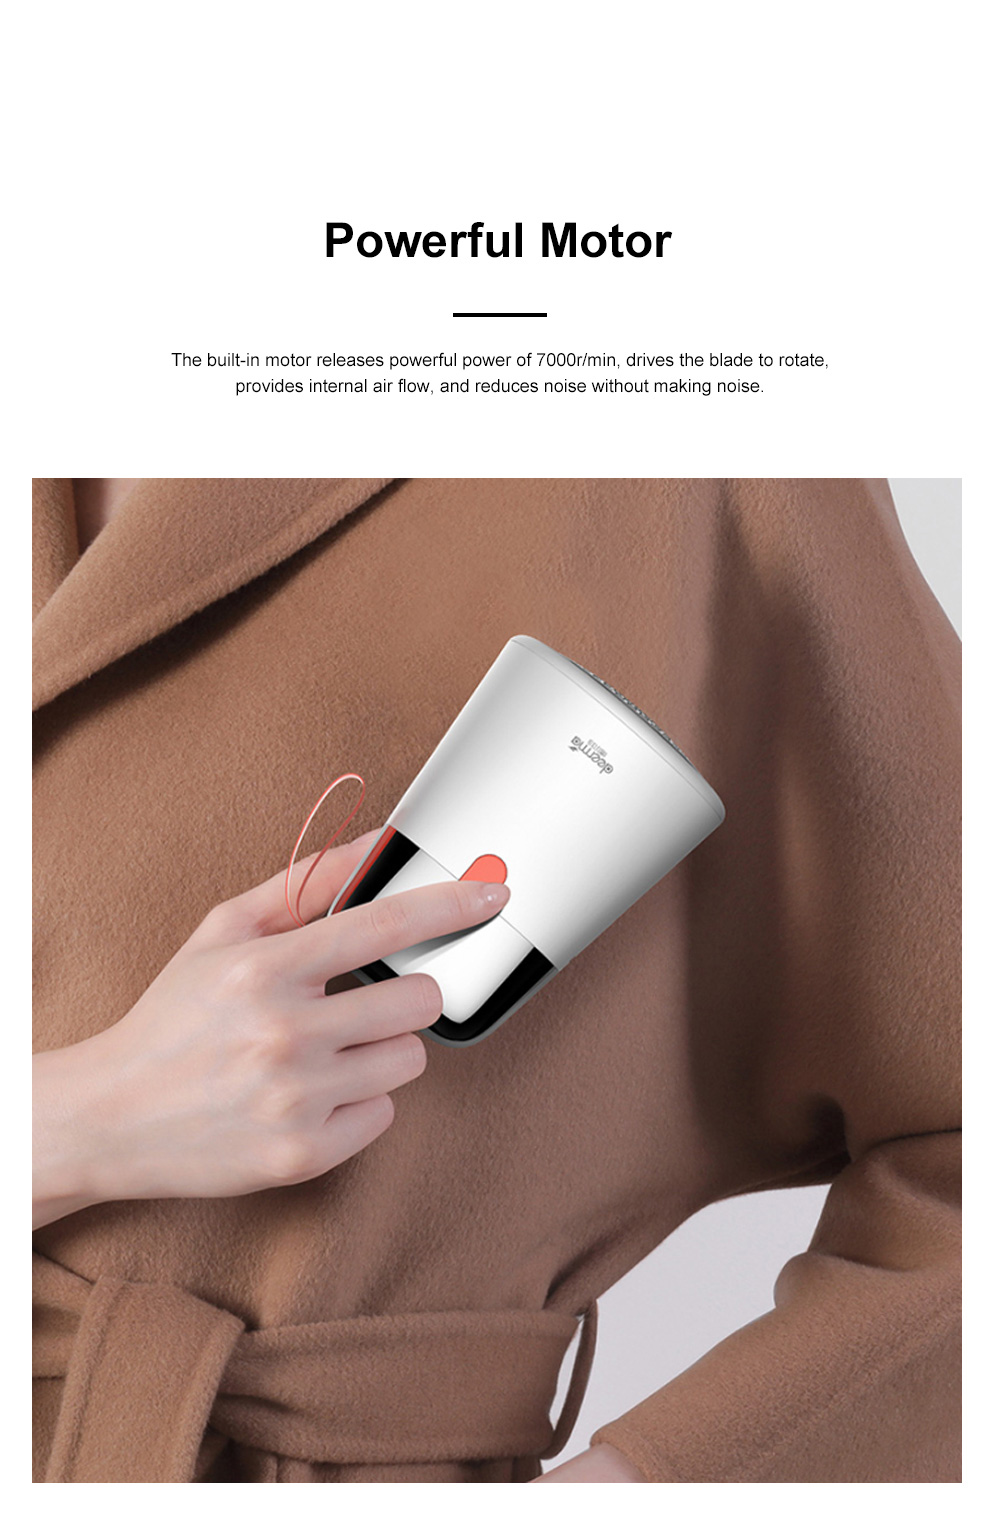 DEERMA 2 in 1 Hair Ball Fuzzing Trimmer USB Rechargeable Fabric Remover with 3-leaf Floating Head for Sweater Clothes Care 1